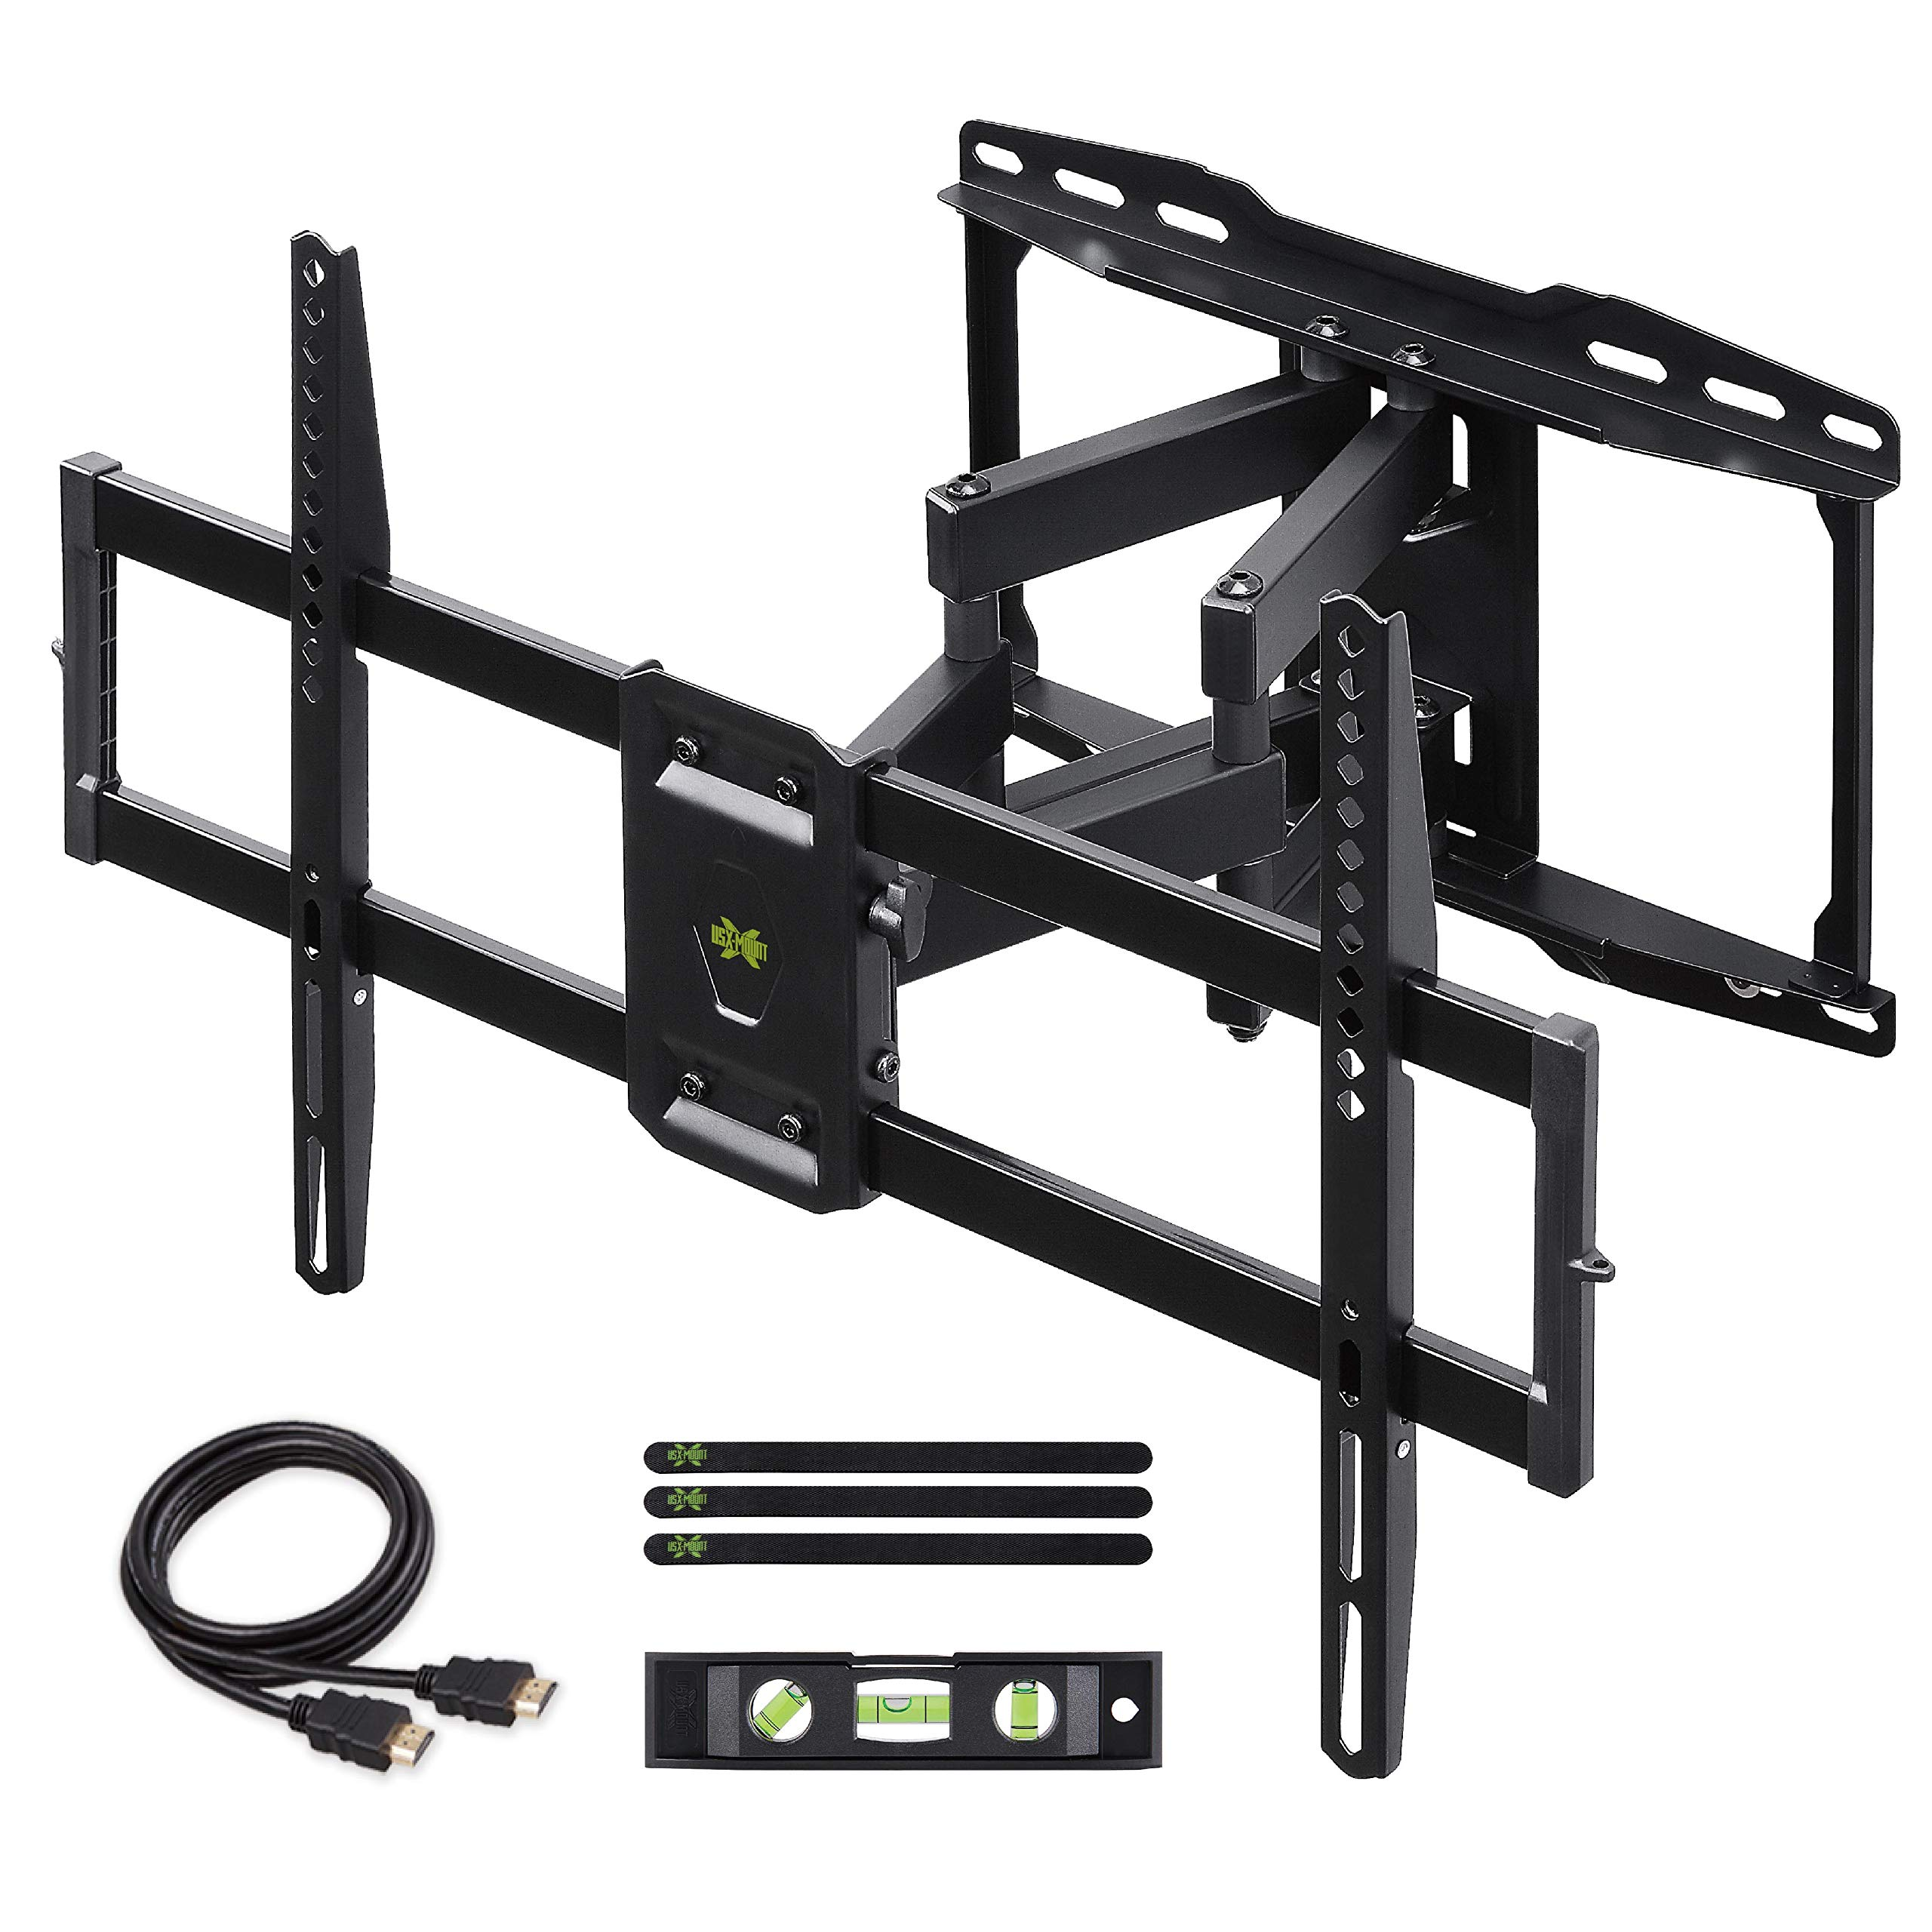 USX MOUNT Full Motion TV Wall Mount Bracket Dual Swivel Articulating Tilt 6 Arms for Most 37-75 inch Flat Screen, LED, 4K TVs, with Max VESA 600x400mm and Fits 12'' 16'' Studs by USX MOUNT